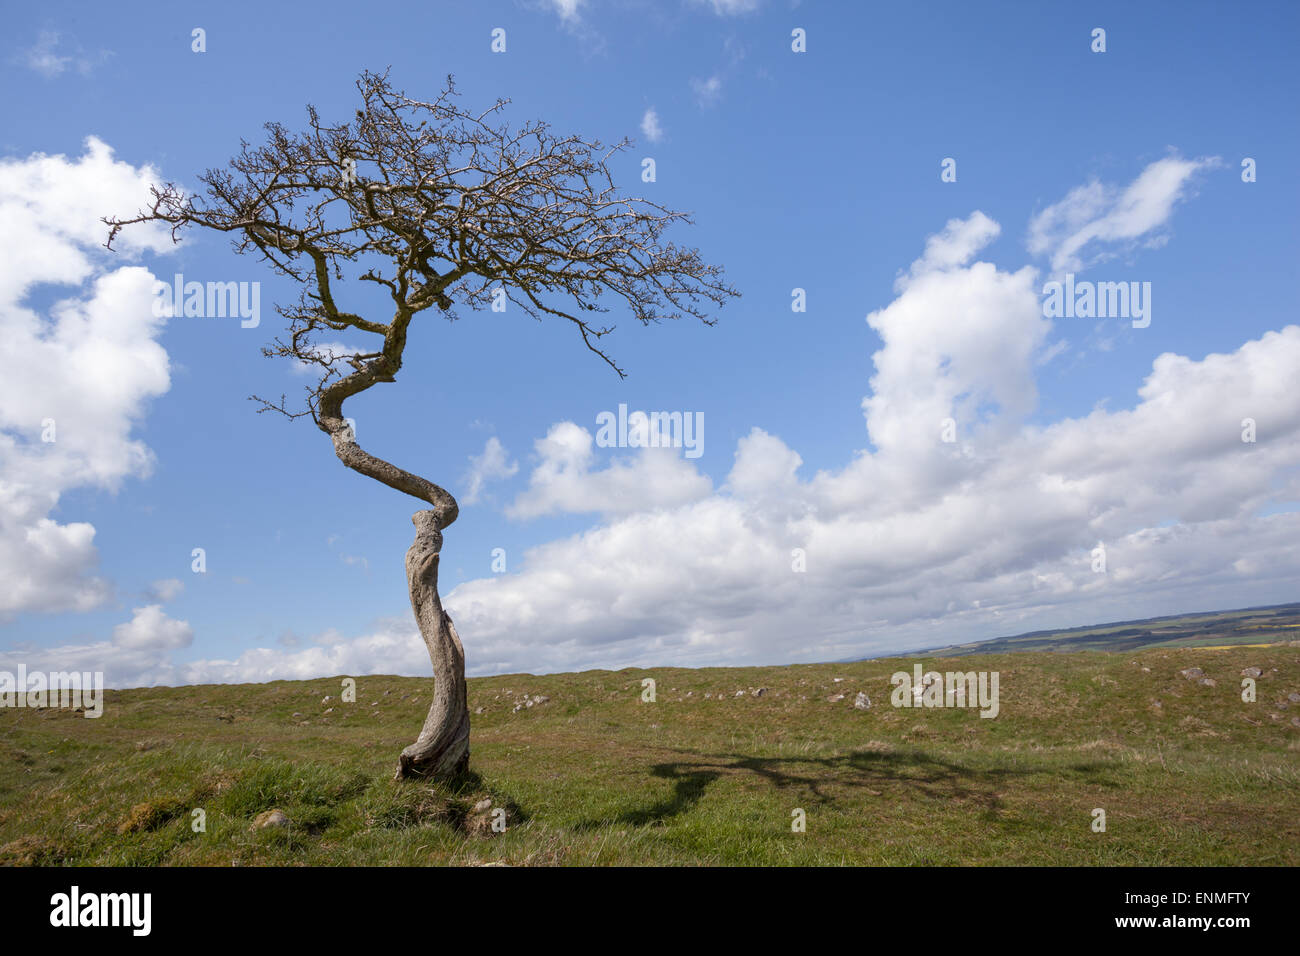 Twisted hawthorn tree in the sunshine on a bright Spring day with blue skies and little fluffy white clouds - Stock Image